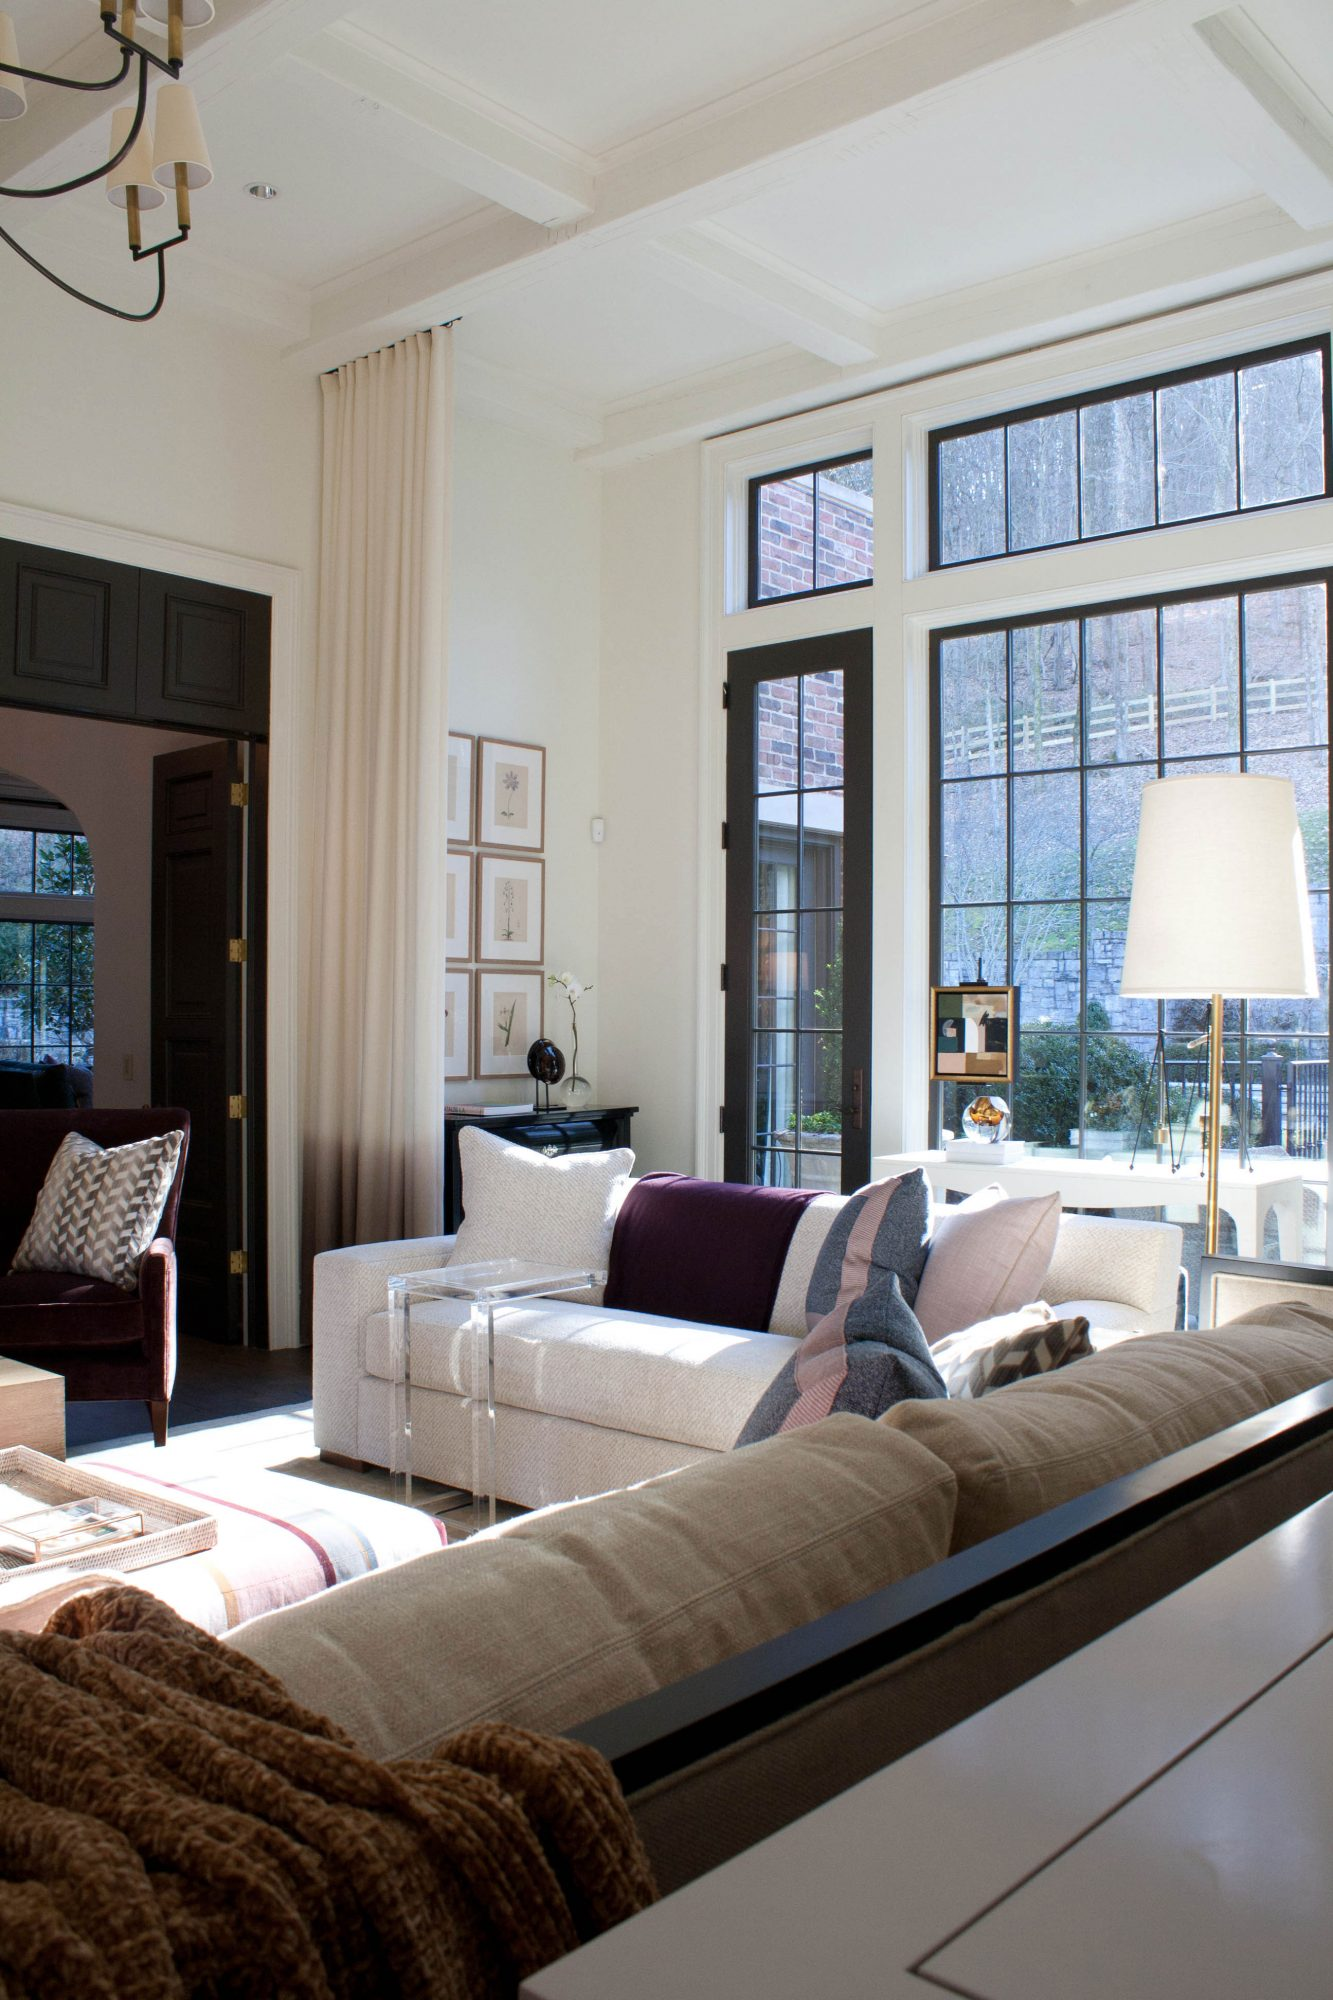 Contrasting White Walls and Dark Windows